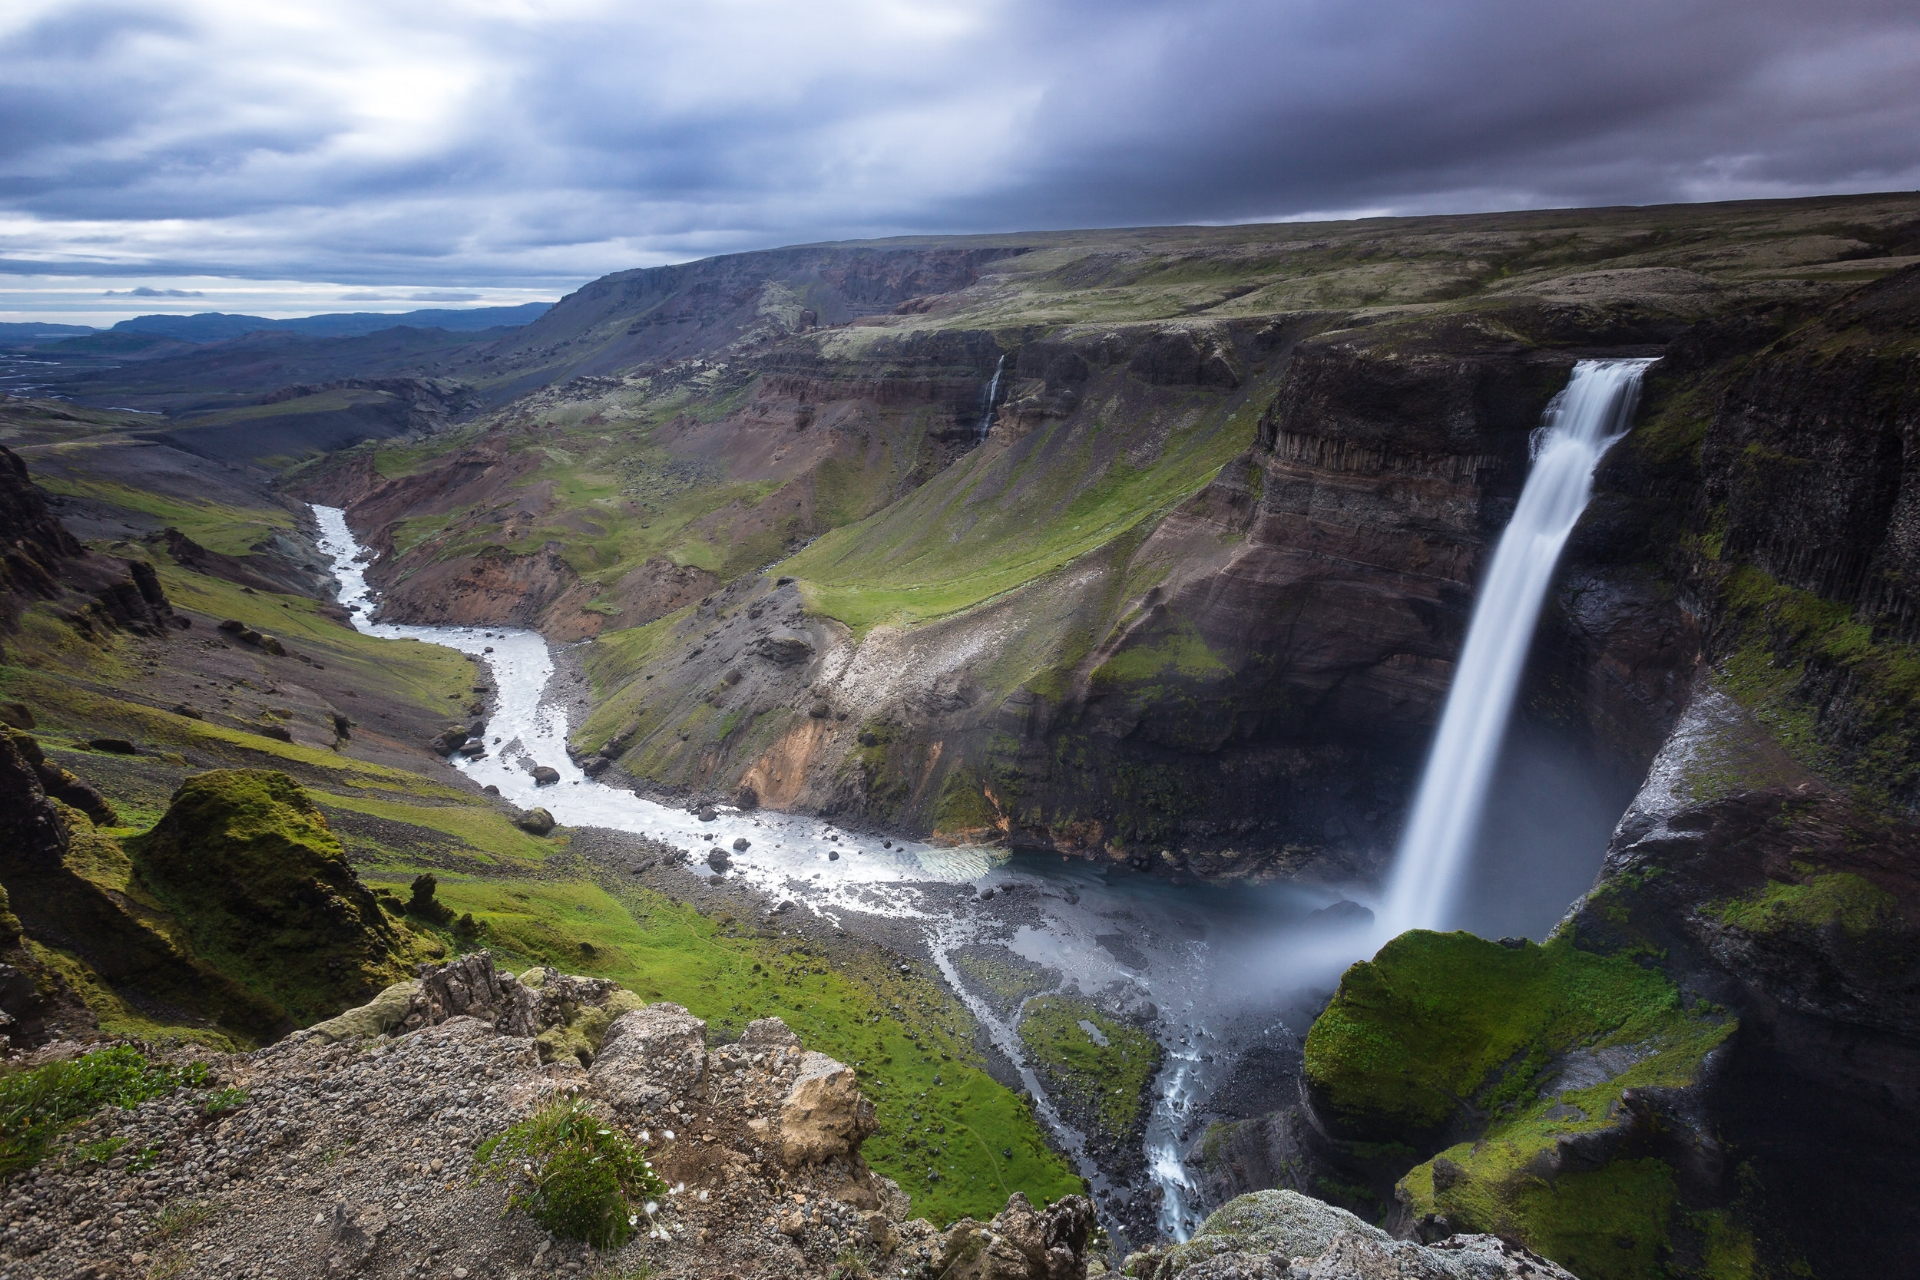 This amazing waterfall is called Háifoss and is approxamitely 122 meters high. It's hidden away in a canyon in the highlands. Have you been up there?